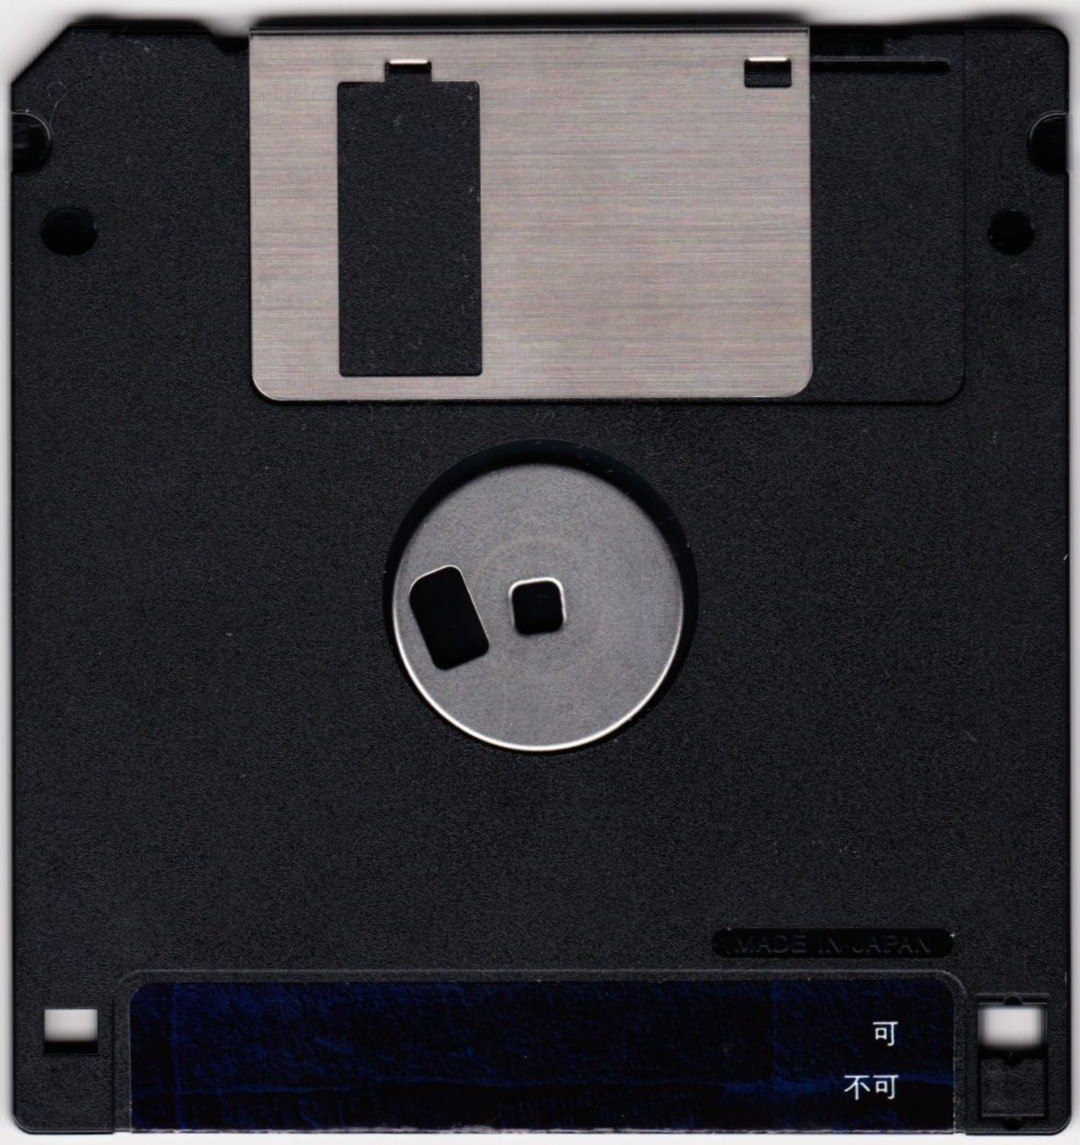 Game - Dungeon Master II - JP - PC-9801 - 3.5-inch - Disk B Key Disk - Back - Scan